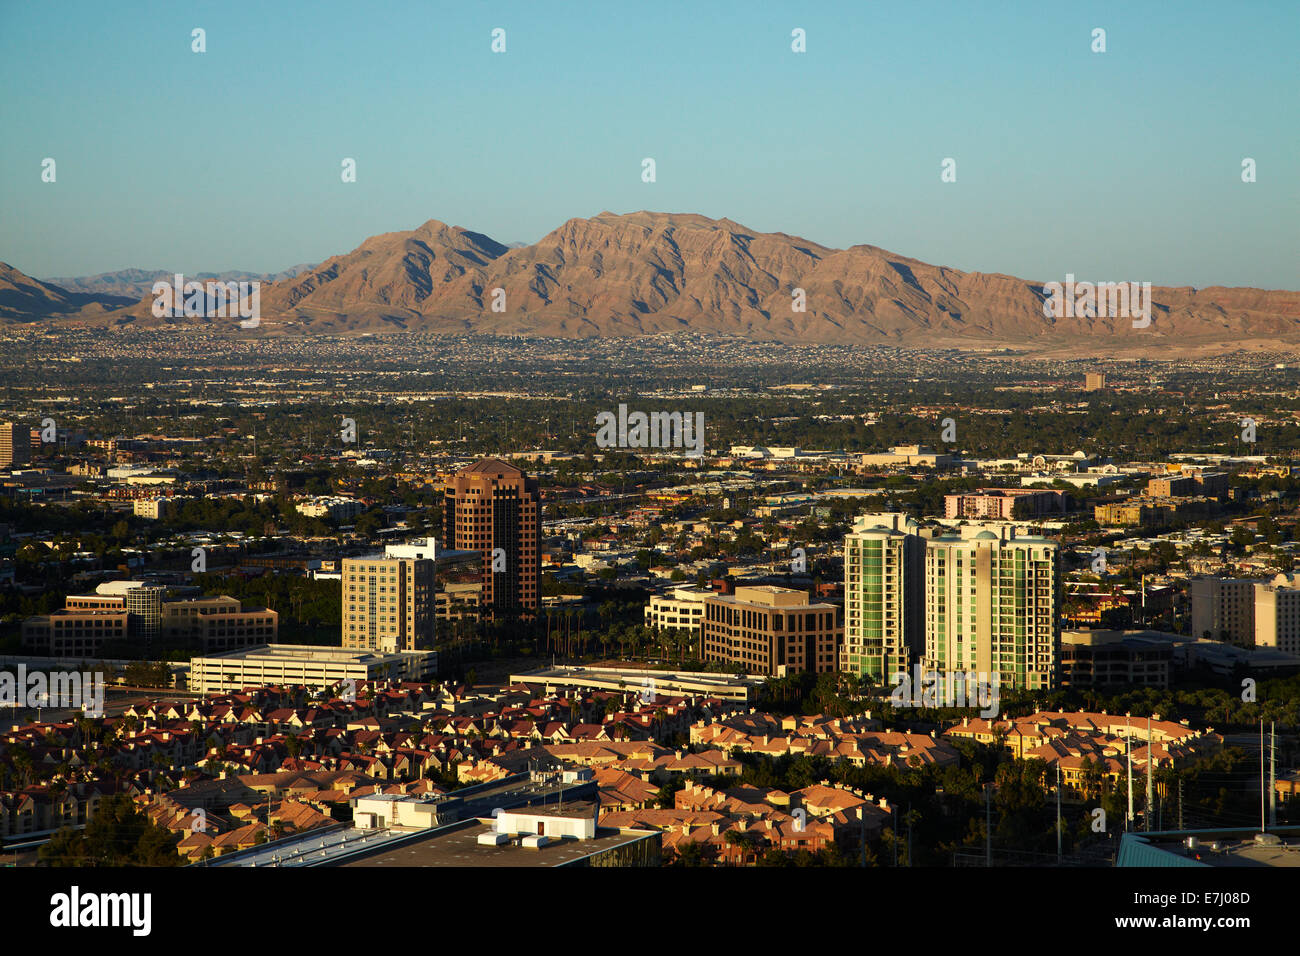 Las Vegas and Frenchman Mountain seen from Eiffel Tower replica at Paris Hotel and Casino, Las Vegas, Nevada, USA - Stock Image